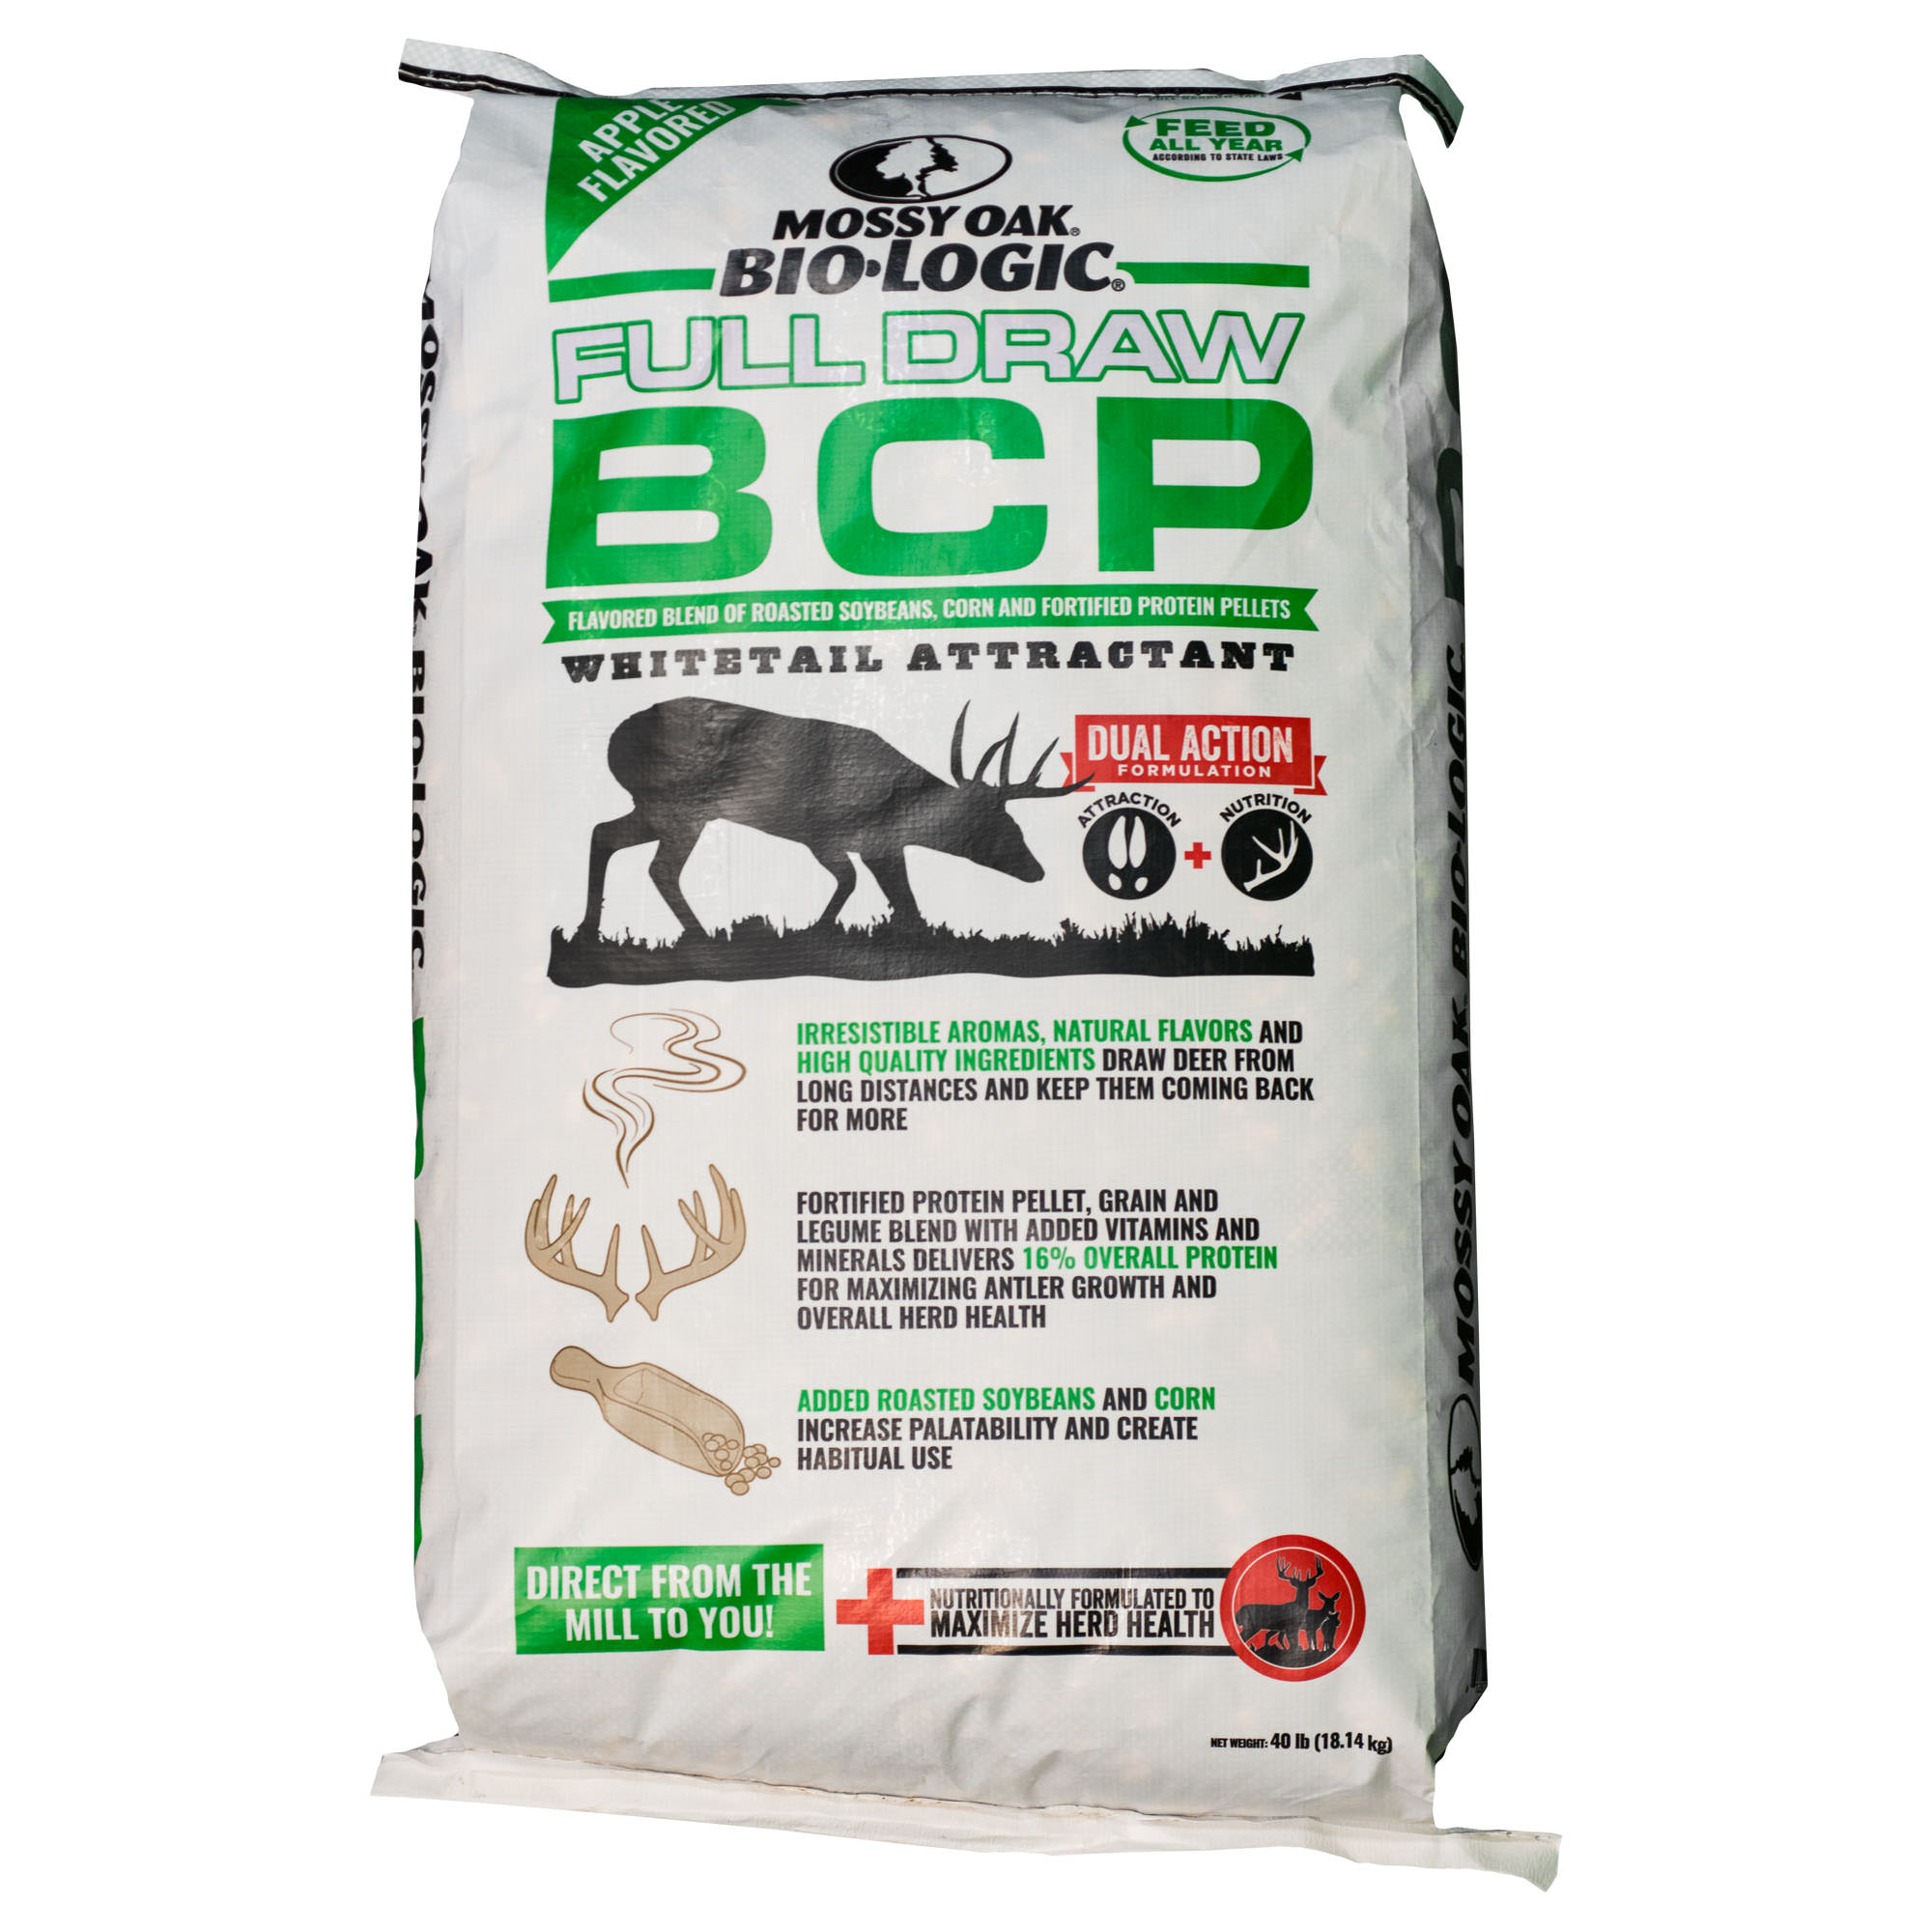 Mossy Oak BioLogic Full Draw BCP Apple Deer Attractant